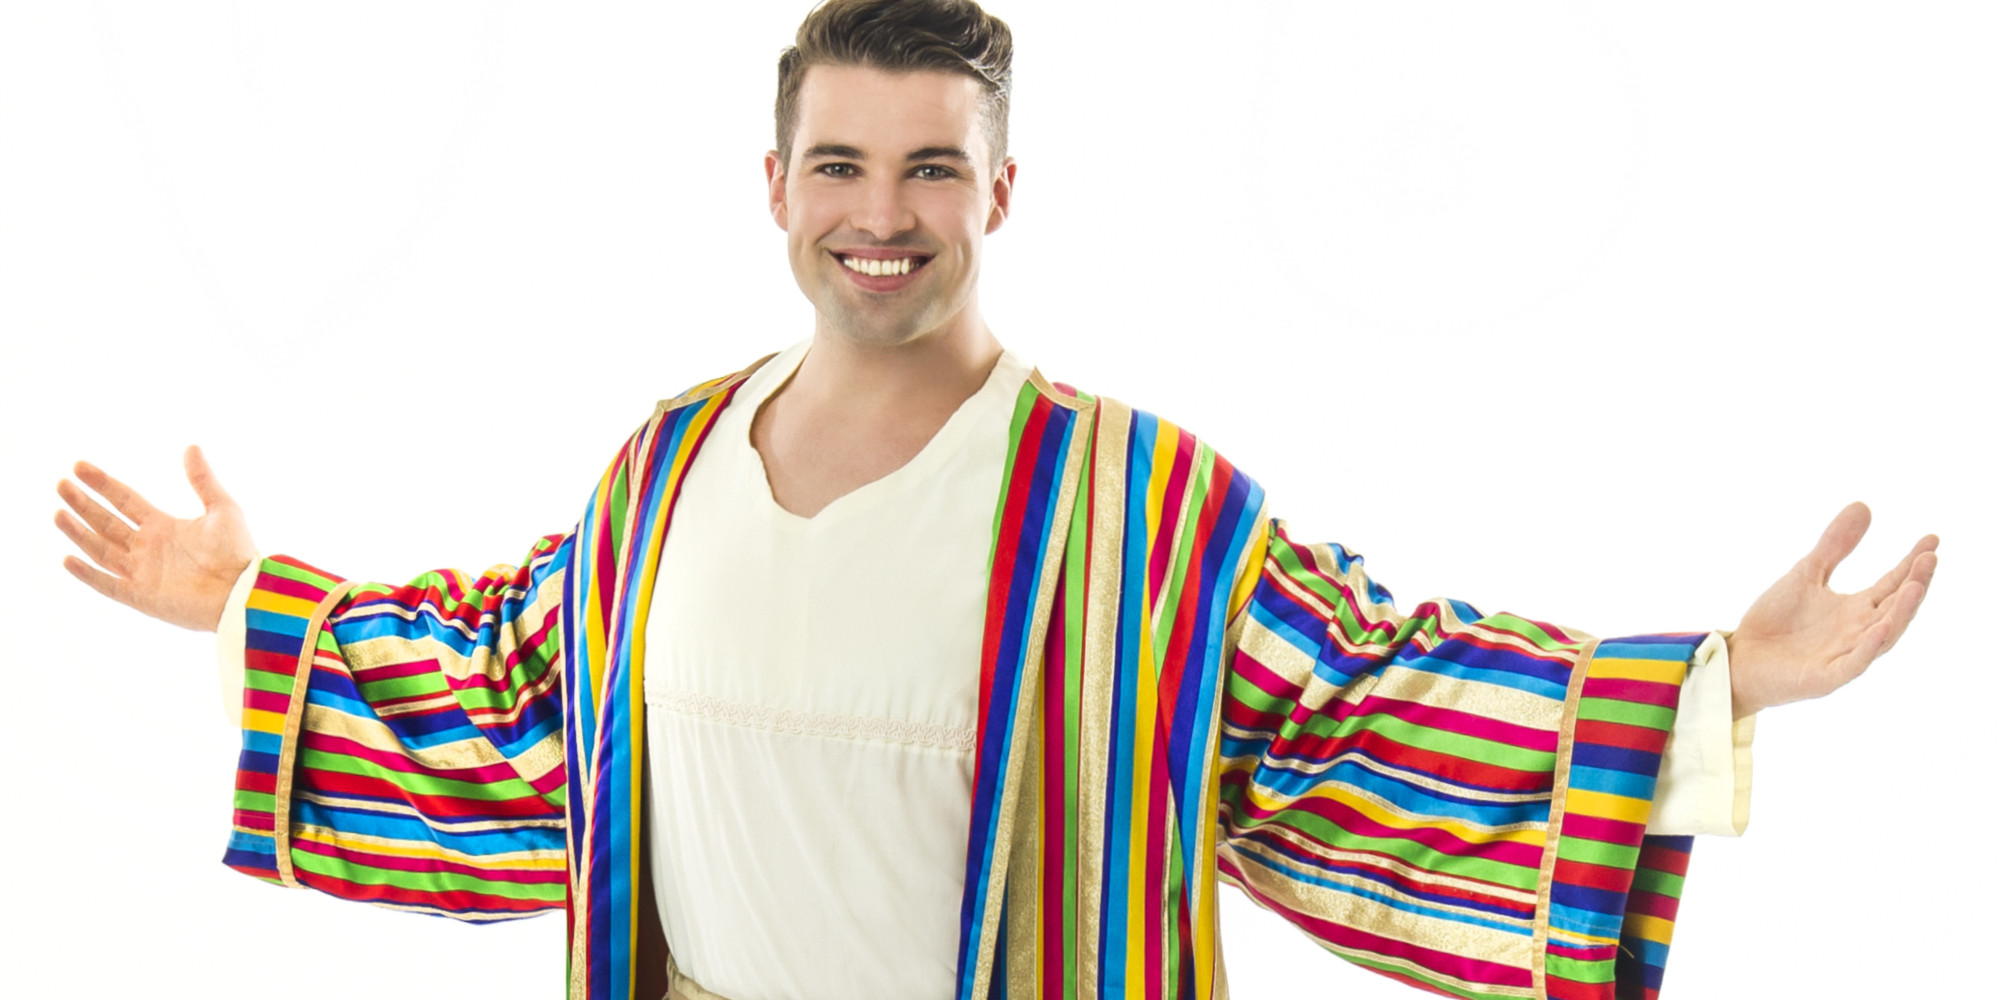 WISE WORDS: Joe McElderry Talks Staying Grounded Post-'X Factor' And Shutting Out Negativity